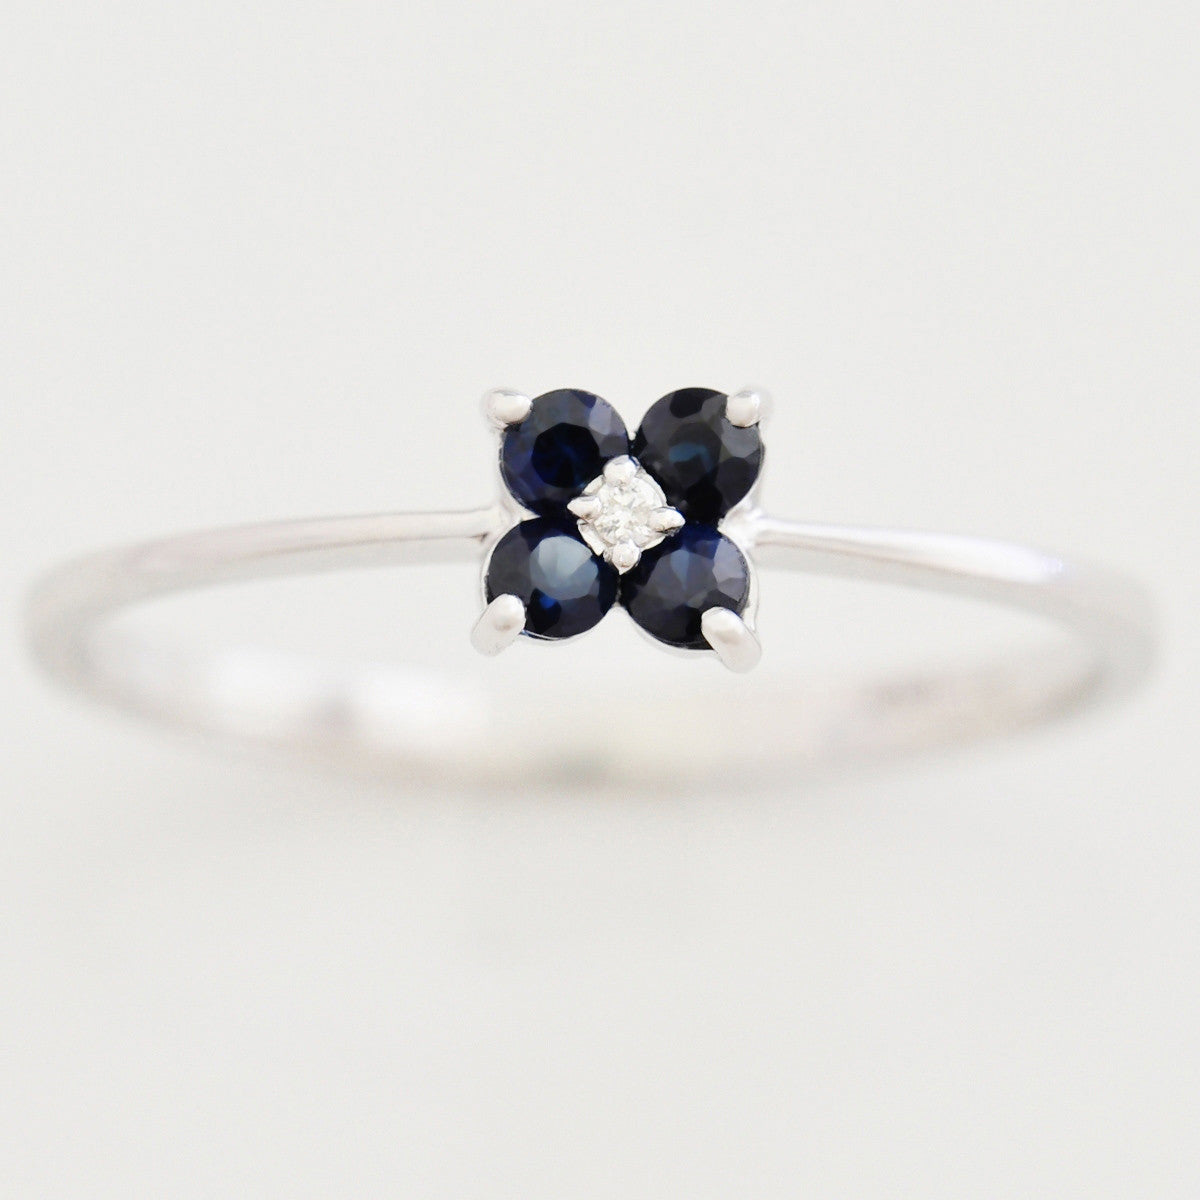 9K SOLID WHITE GOLD 0.20CT SAPPHIRE FLORAL CLUSTER RING WITH CENTRE DIAMOND.